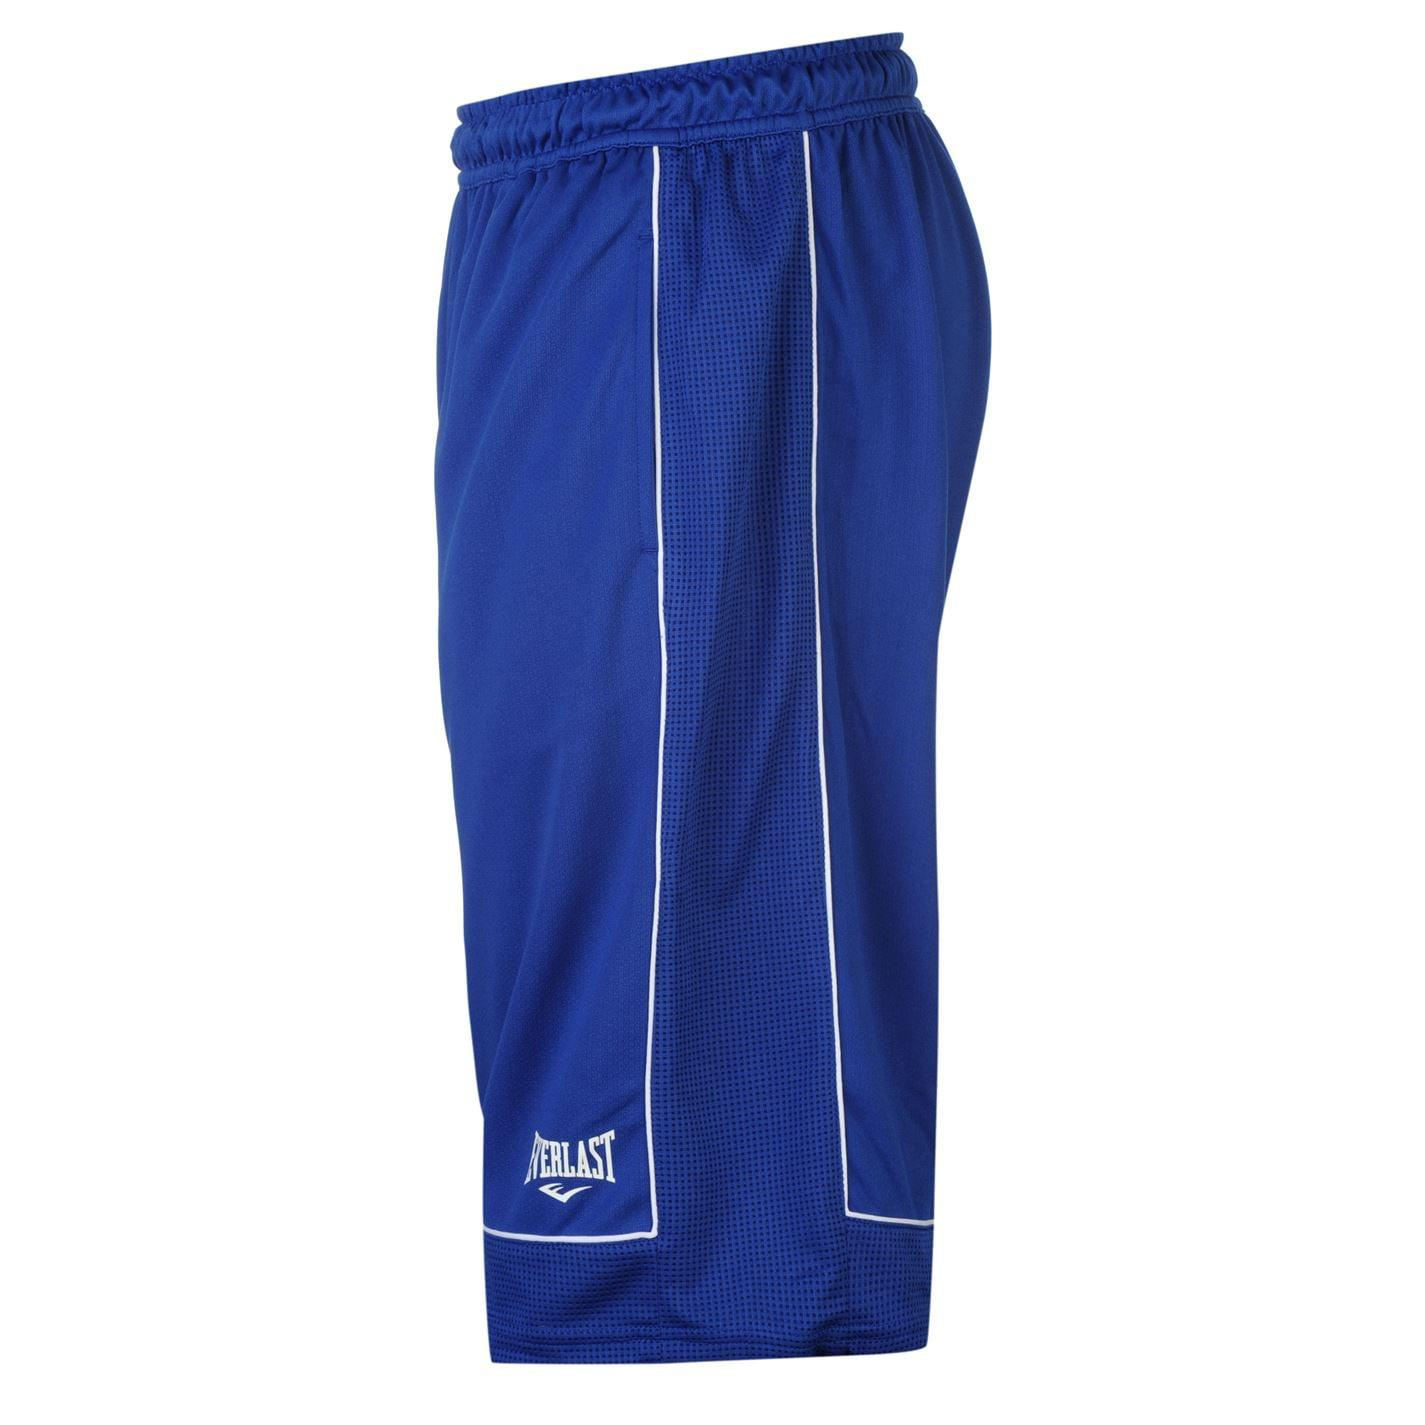 EVERLAST Basketball Shorts Mens